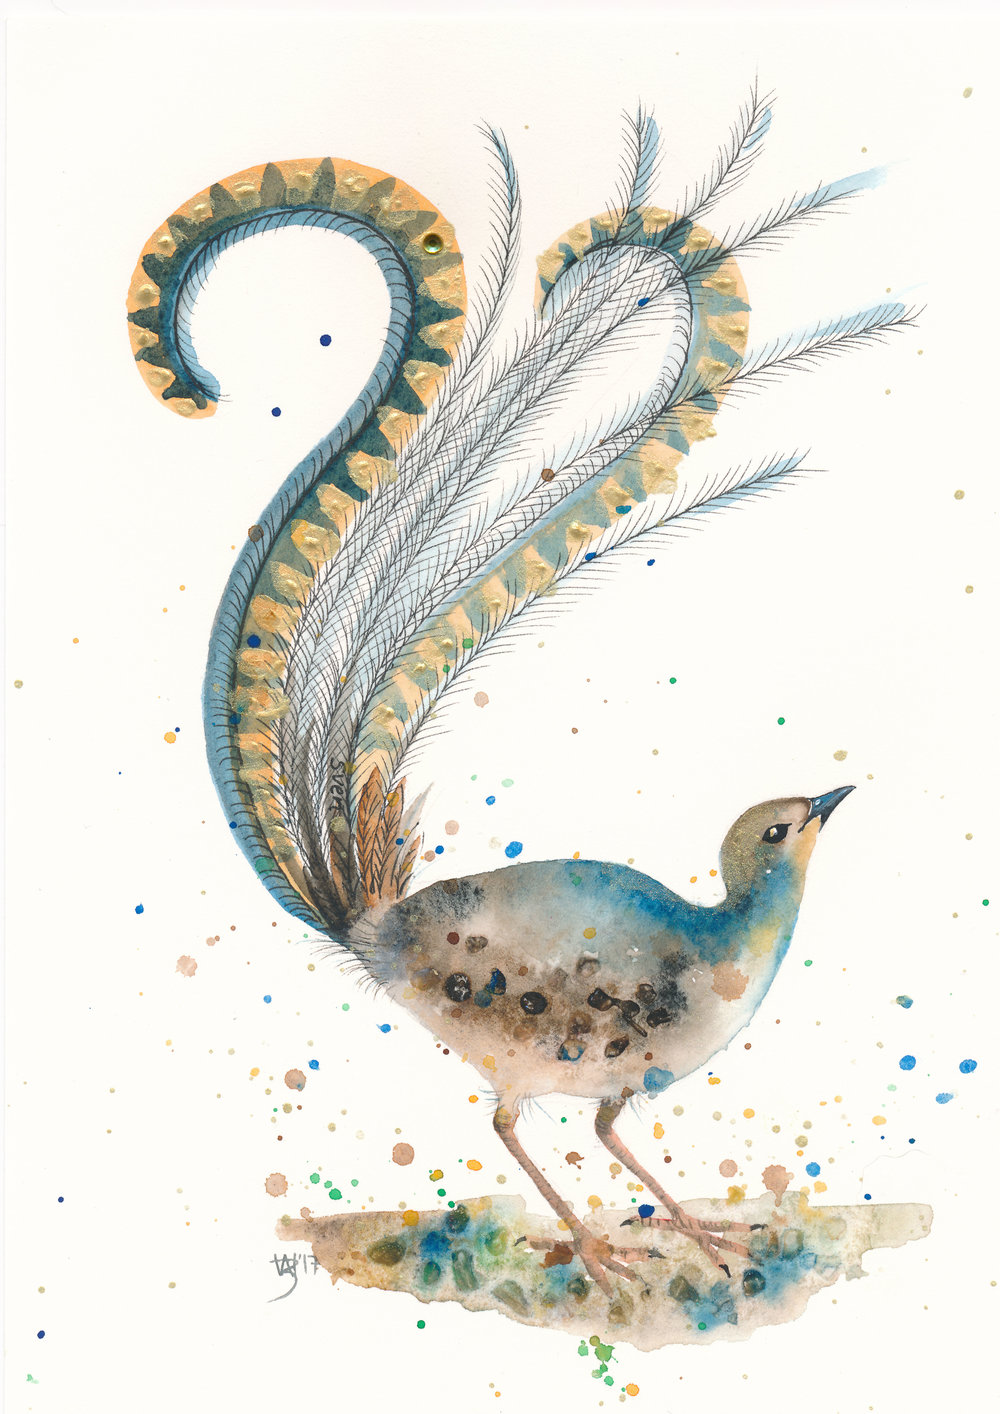 Lyrebird Watercolour with Gold Acrylic - Zoe Wood 2017